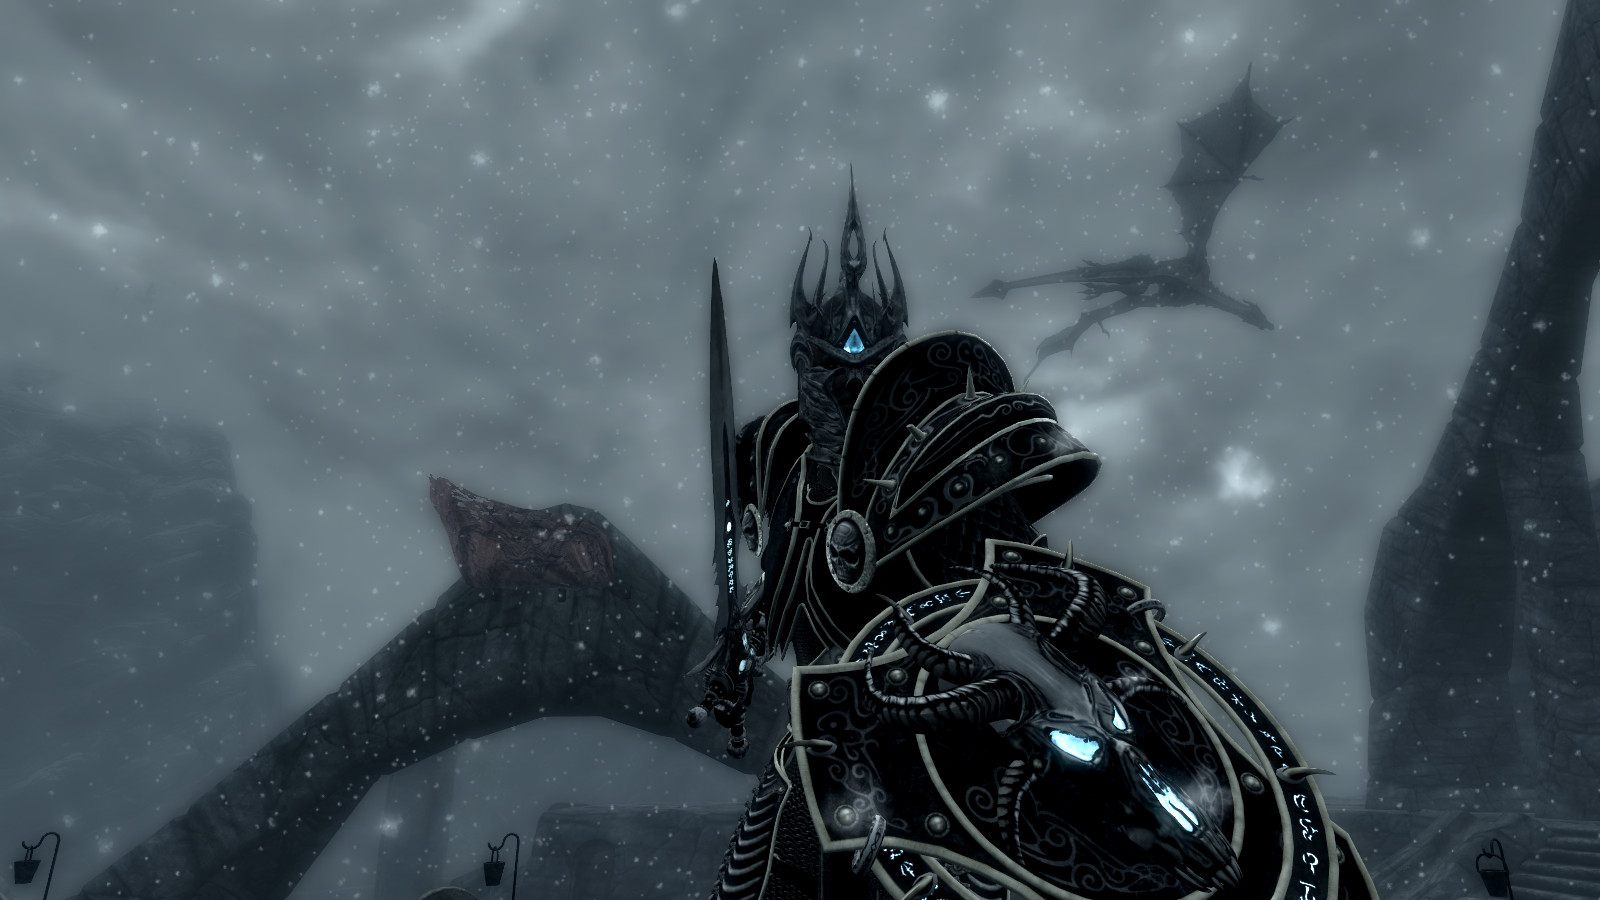 The Lich King Decends Into Darkness by kordulus